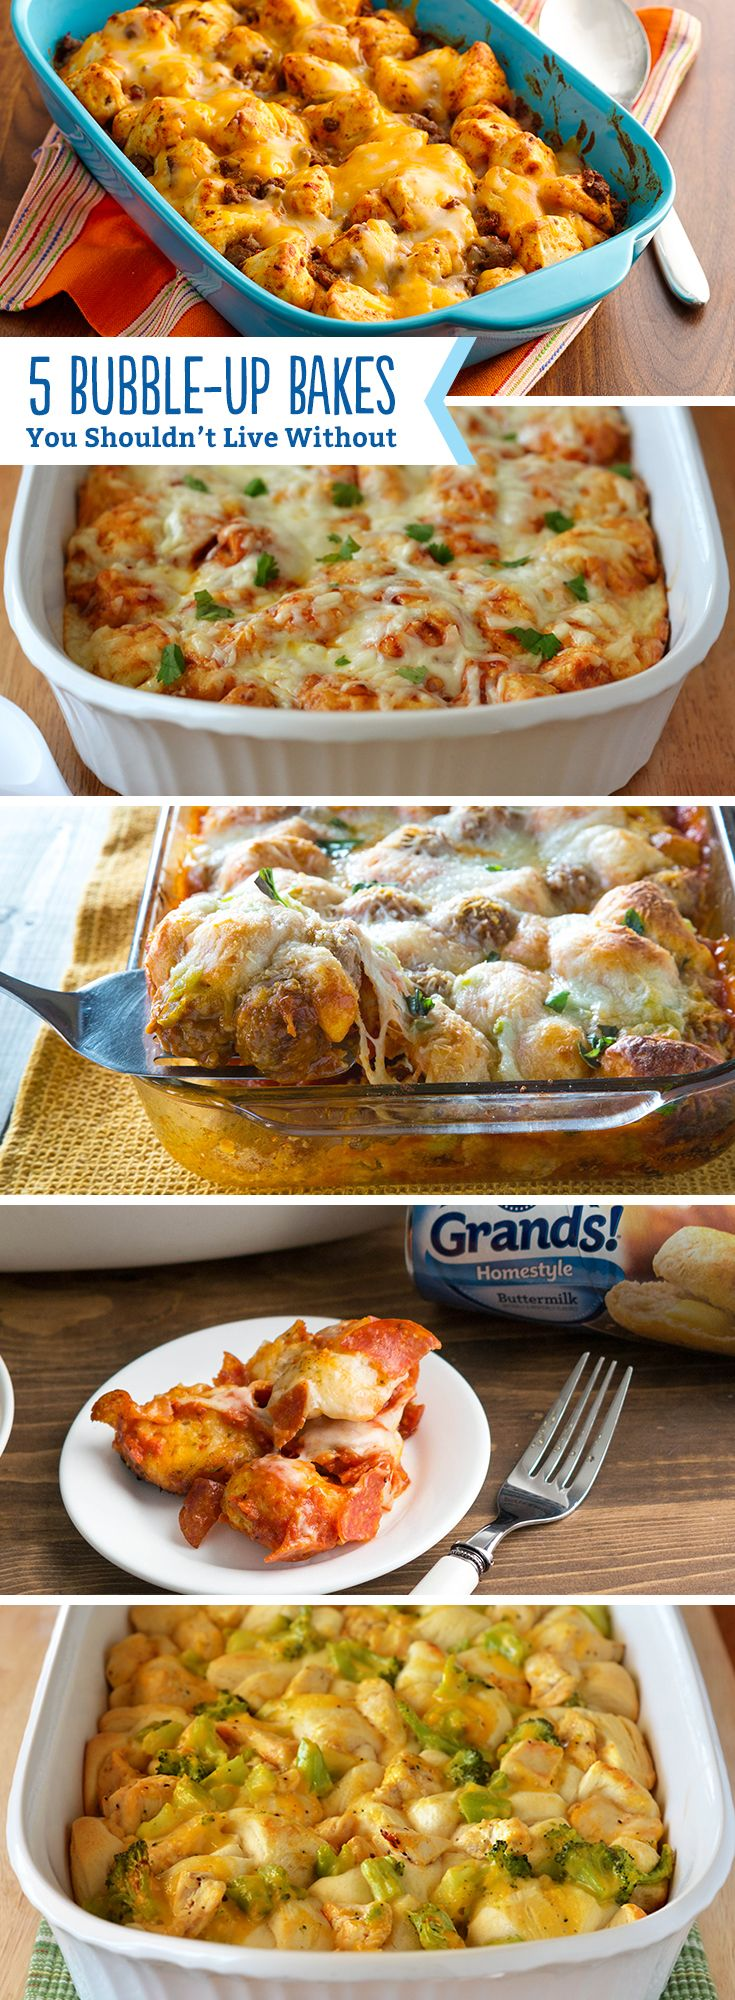 "Bubble-up bakes have a special place in our heart! You can't live with out these easy, delicious and tasty meals. They basically define ""weeknight dinner""."